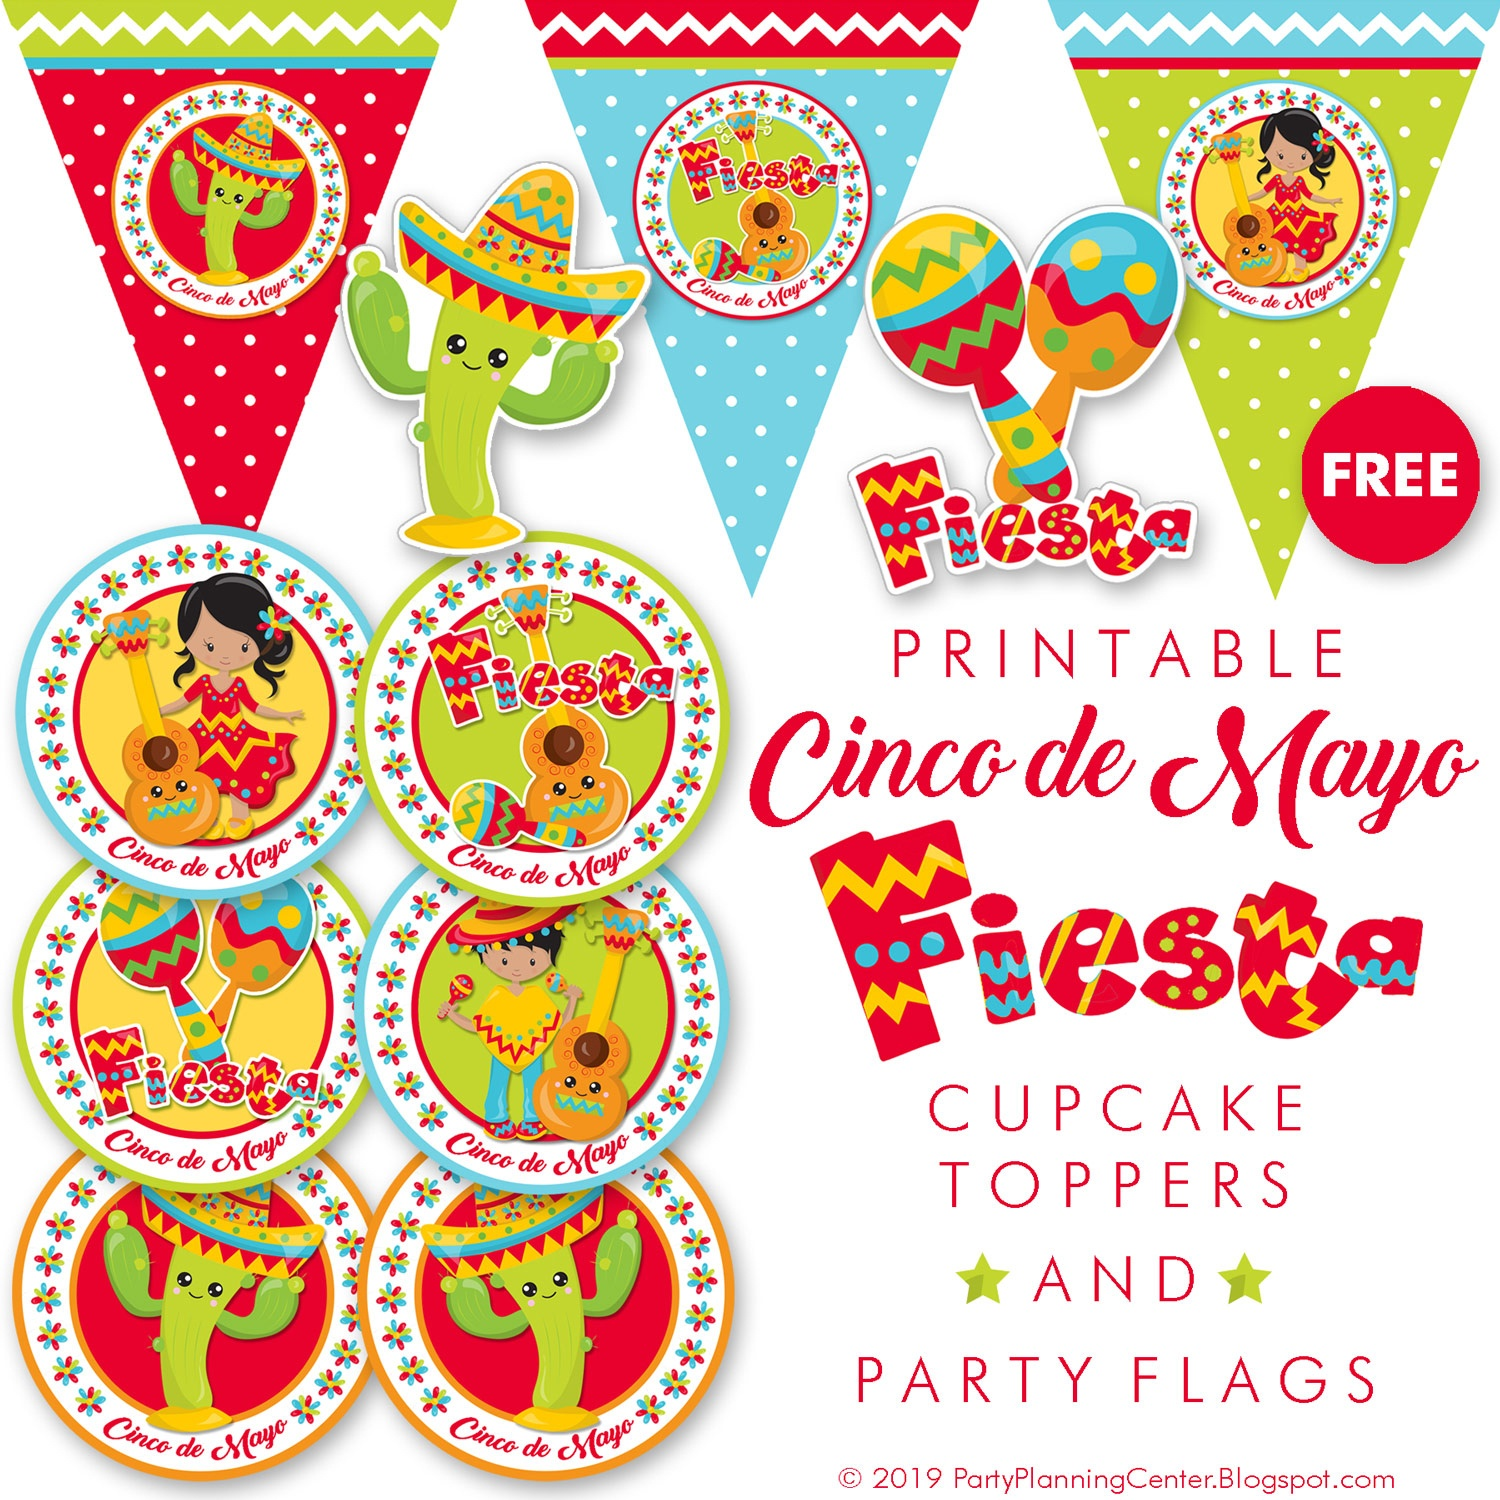 Party Planning: Free Mexican Fiesta Party Decorations - Free Printable Mexican Party Decorations